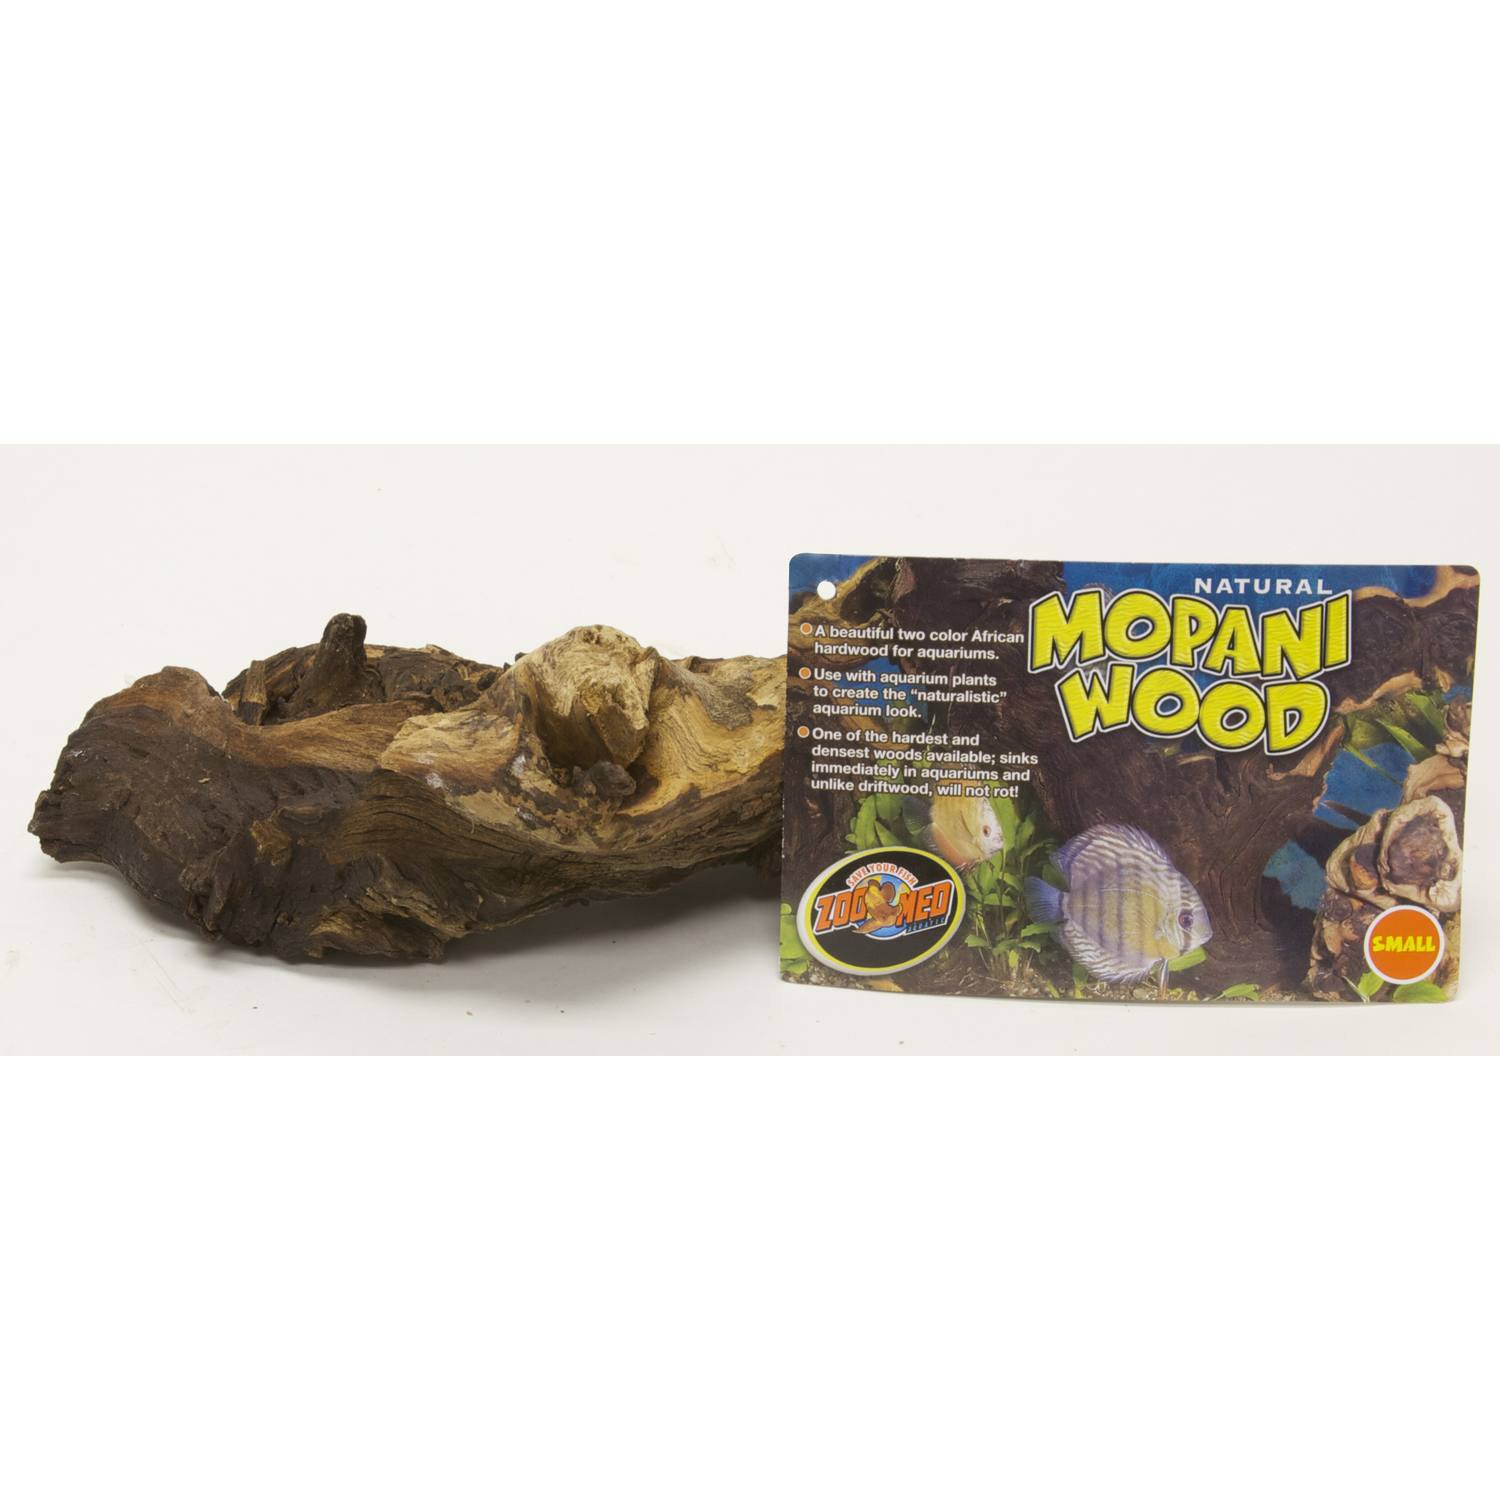 Zoo Med Aquatic Natural Mopani Wood Petco